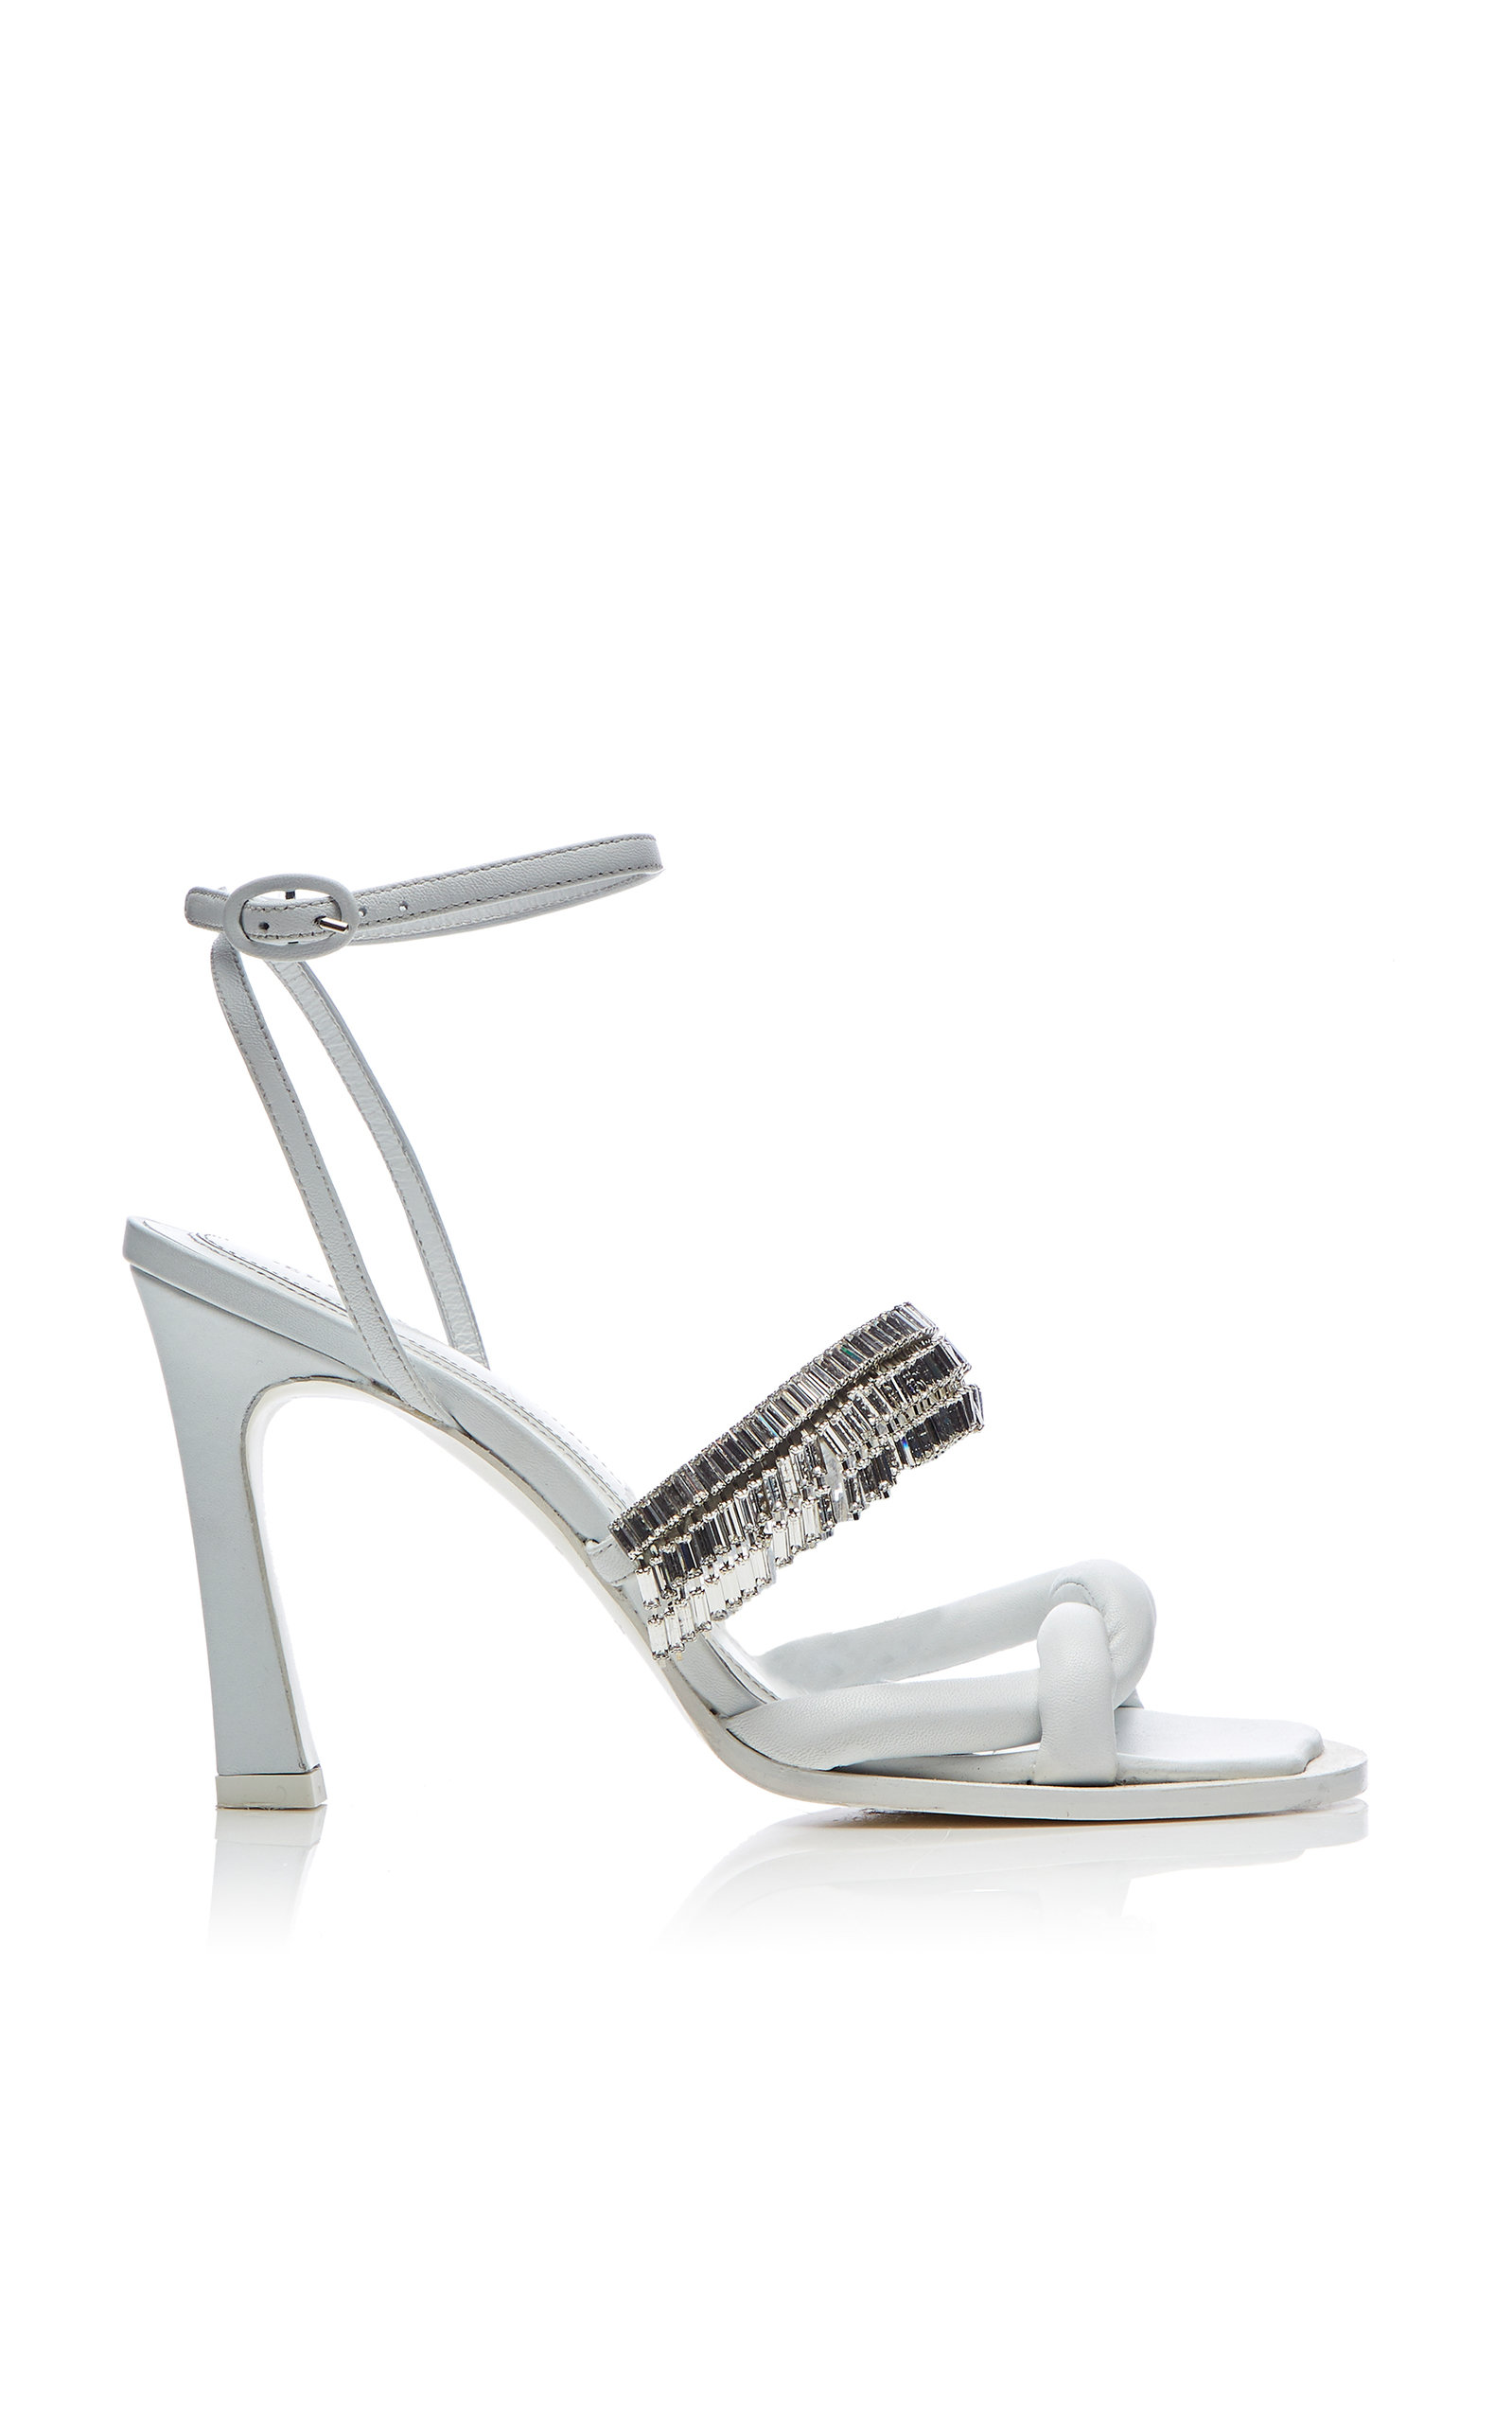 efc292f0436 Distill Twisted Jewelry Leather Sandals by Ellery